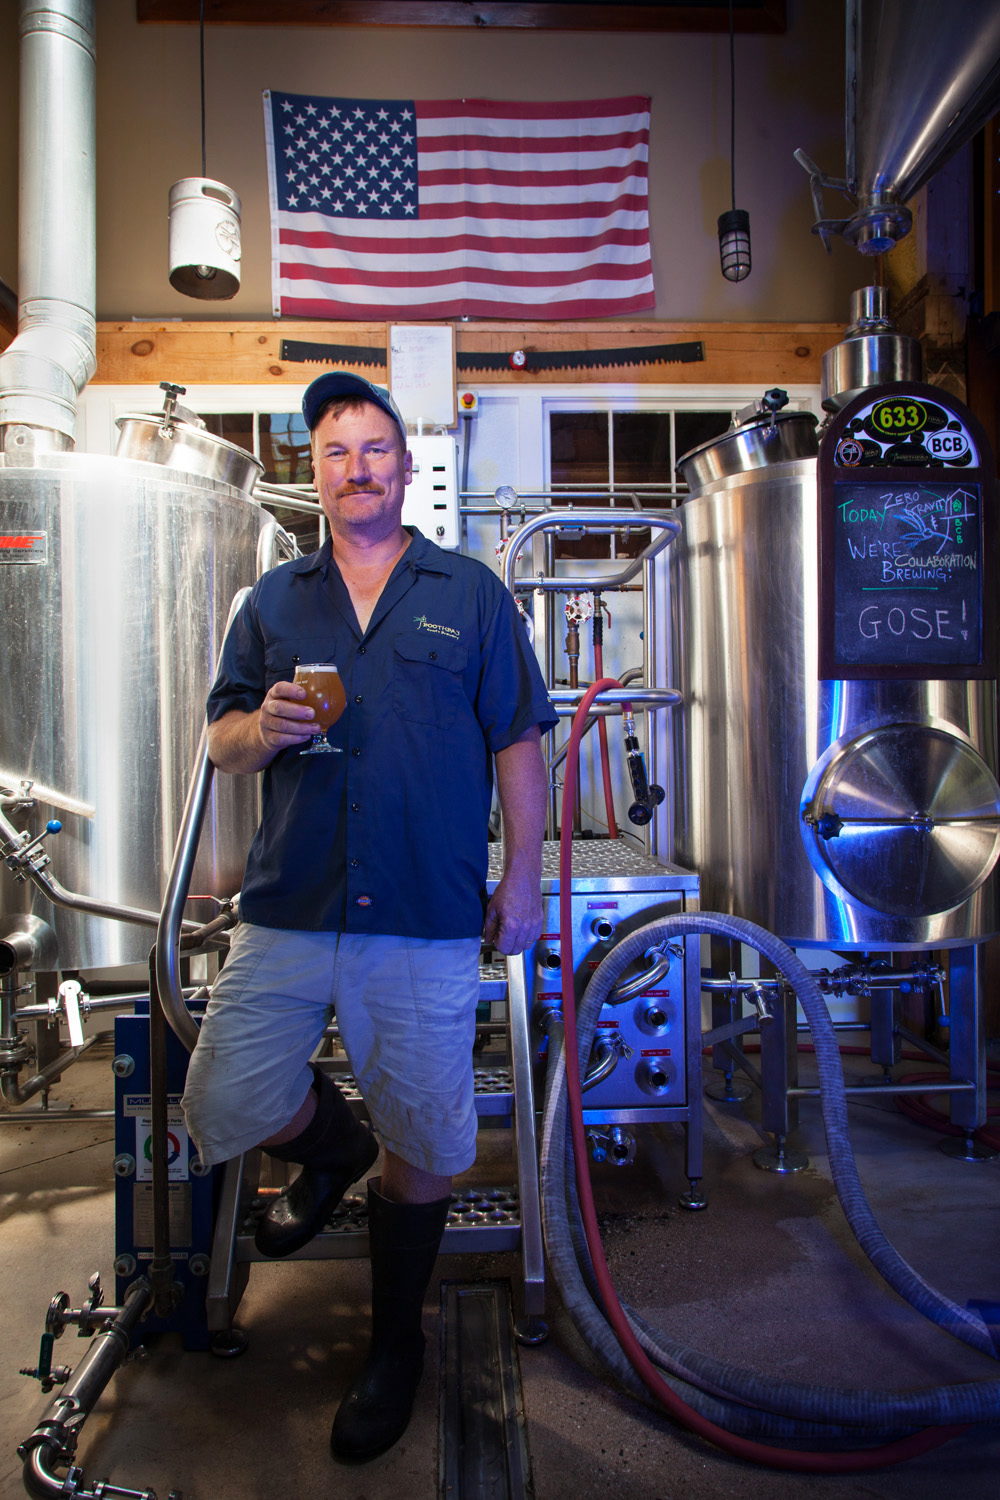 Win Mitchell, Brewmaster Boothbay Craft Brewery Boothbay, ME Established in 2009